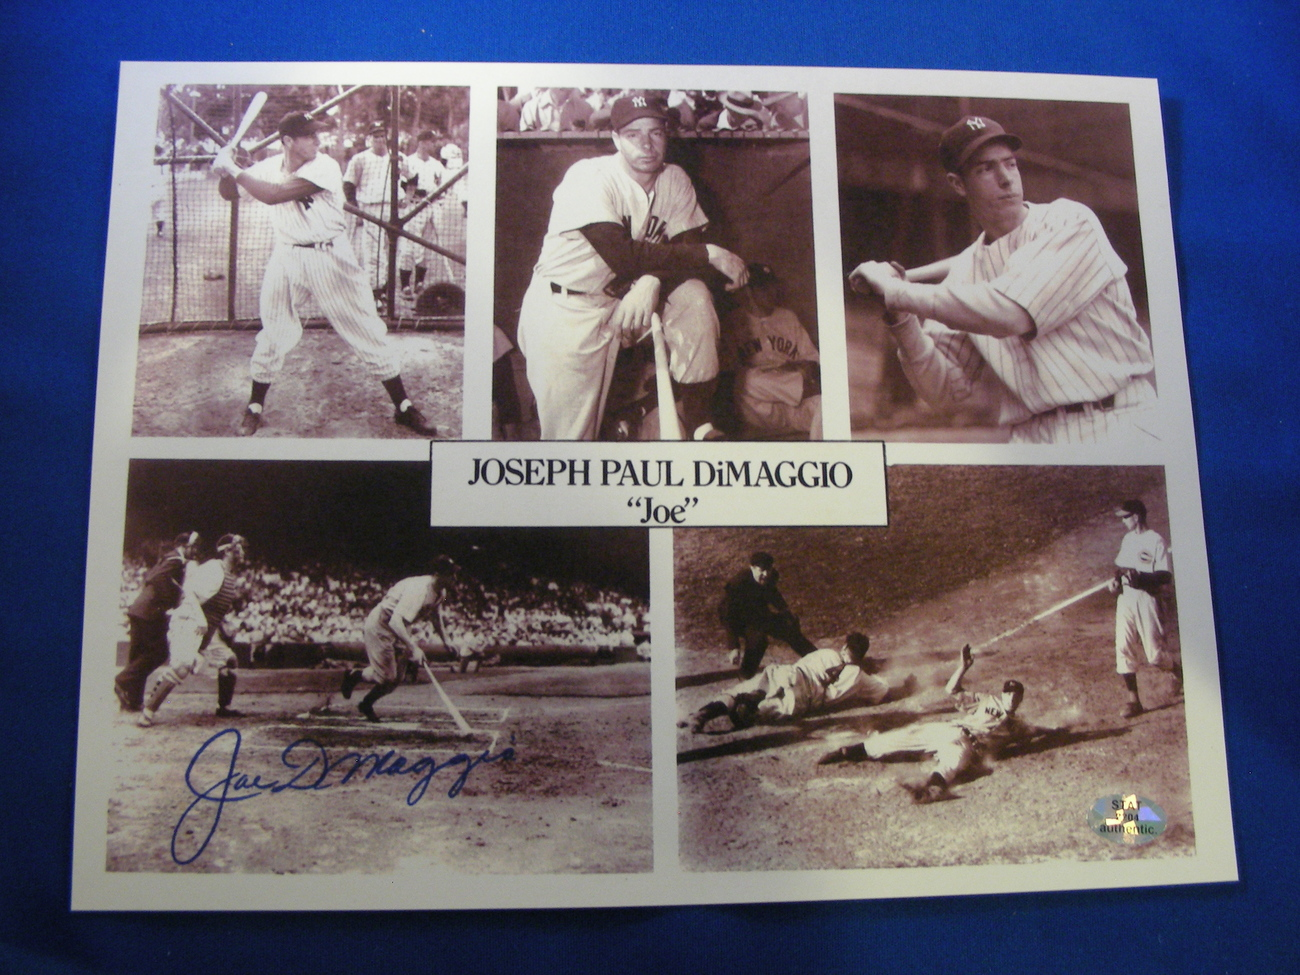 Primary image for JOE DIMAGGIO HOF 1955 56 GAME HITTING STREAK SIGNED AUTO 8X10 PHOTO STAT & SB AU